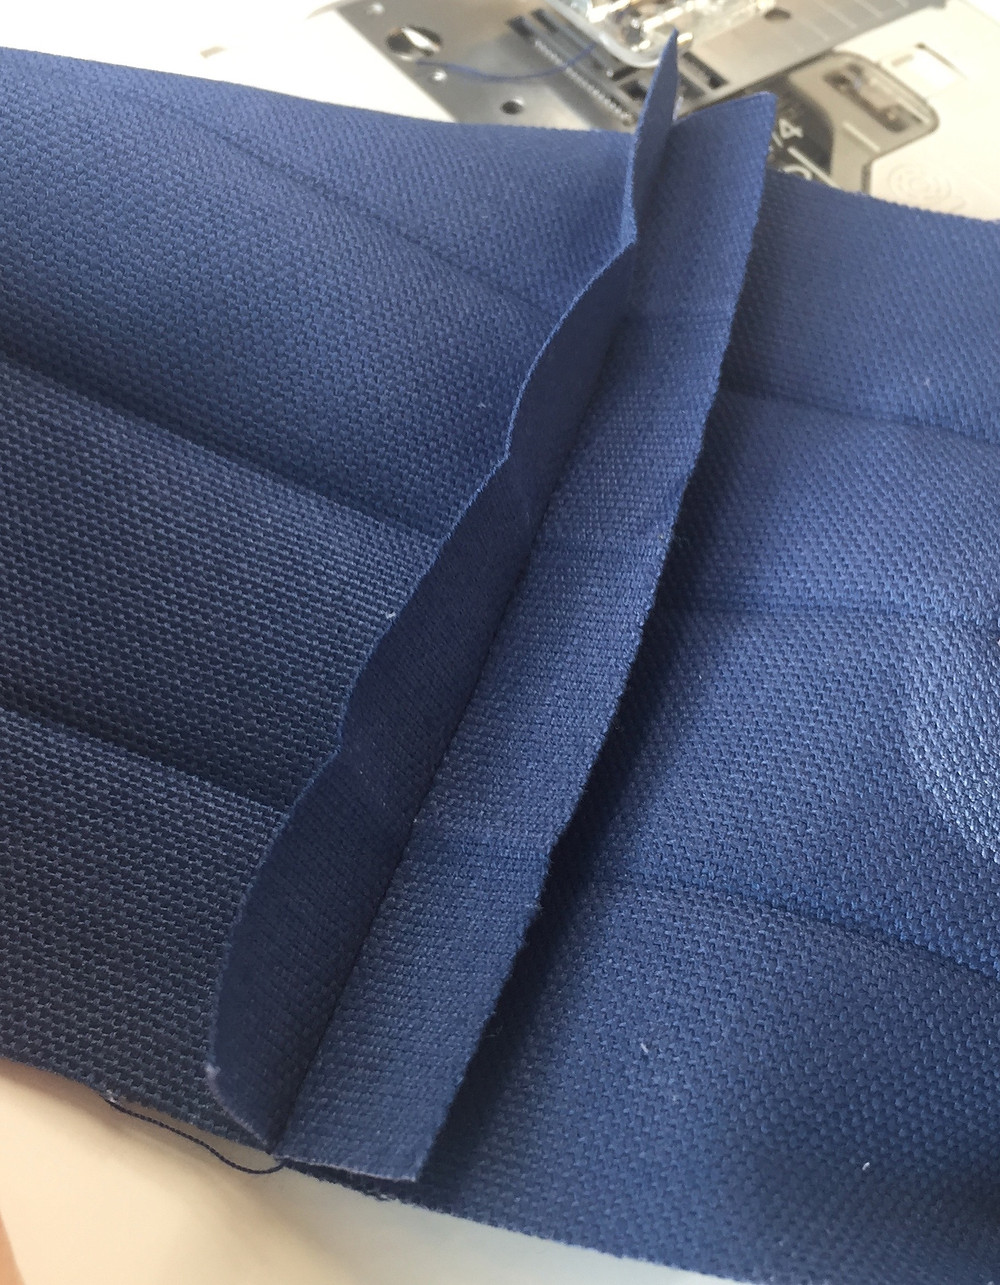 stitch Straps together to be one huge loop.